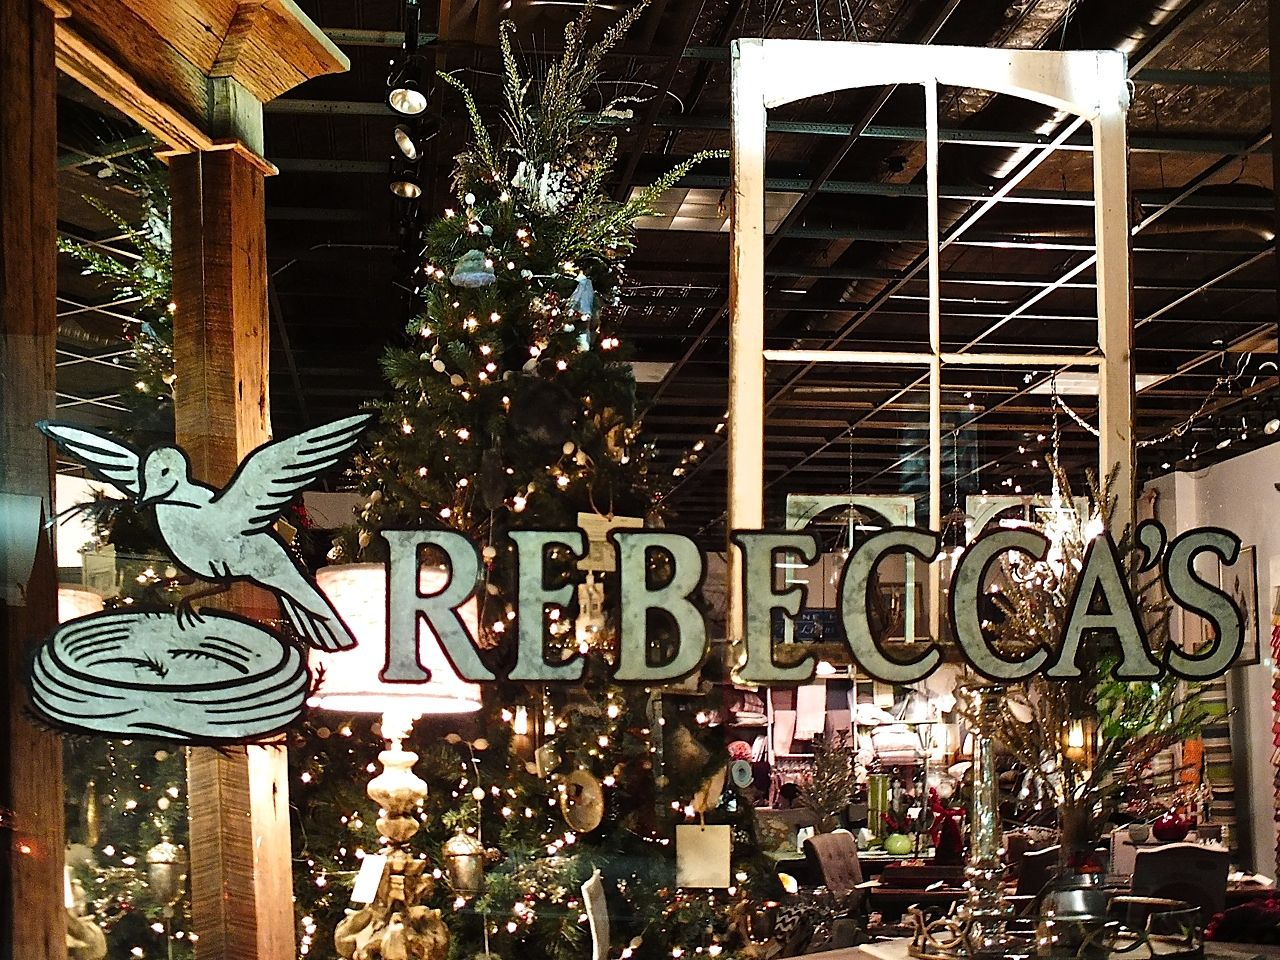 Rebeccau0027s Furniture U0026 Design On Main Street Is A Beautiful Shop Of Vintage,  Antique And Trendy Furniture Pieces And Home Decor   Downtown Franklin  Tennessee ...